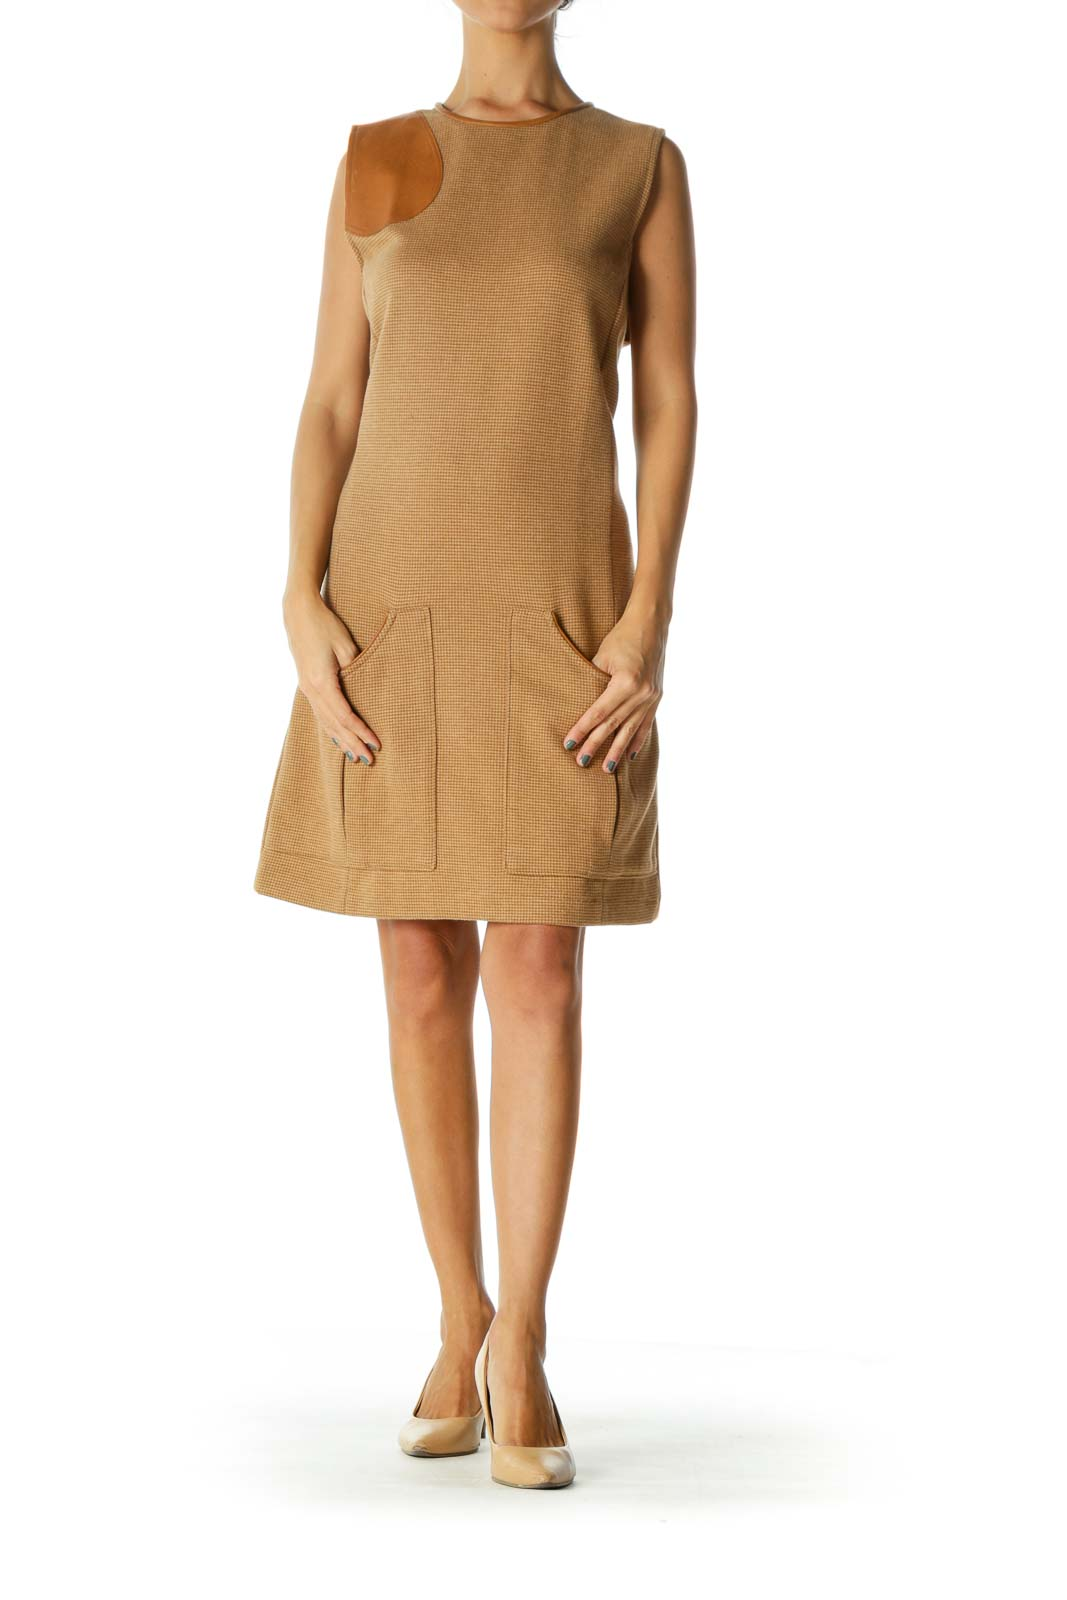 Beige Textured Sleeveless Pocketed Work Dress